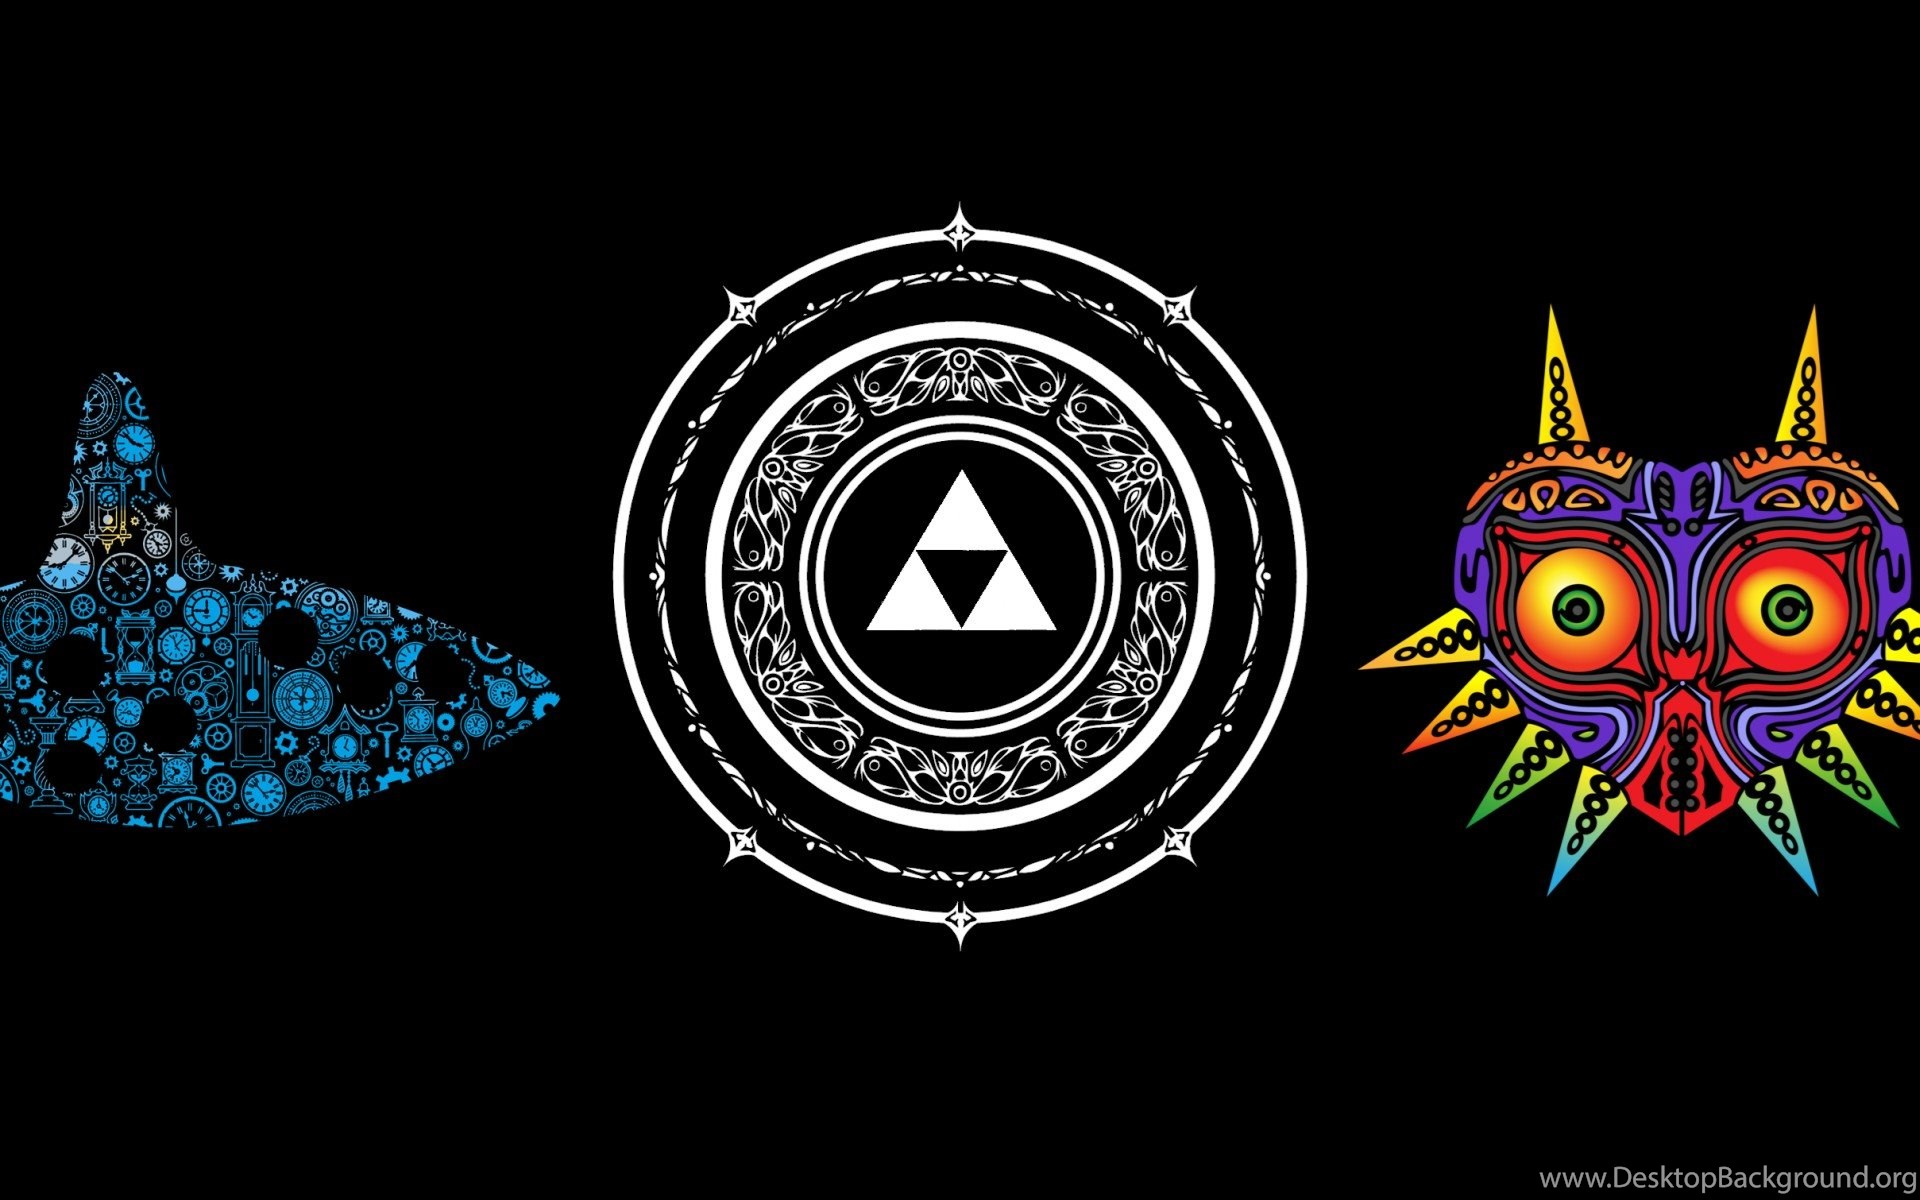 Legend Of Zelda Ocarina Of Time 1920x1200 Hd Wallpapers And Free